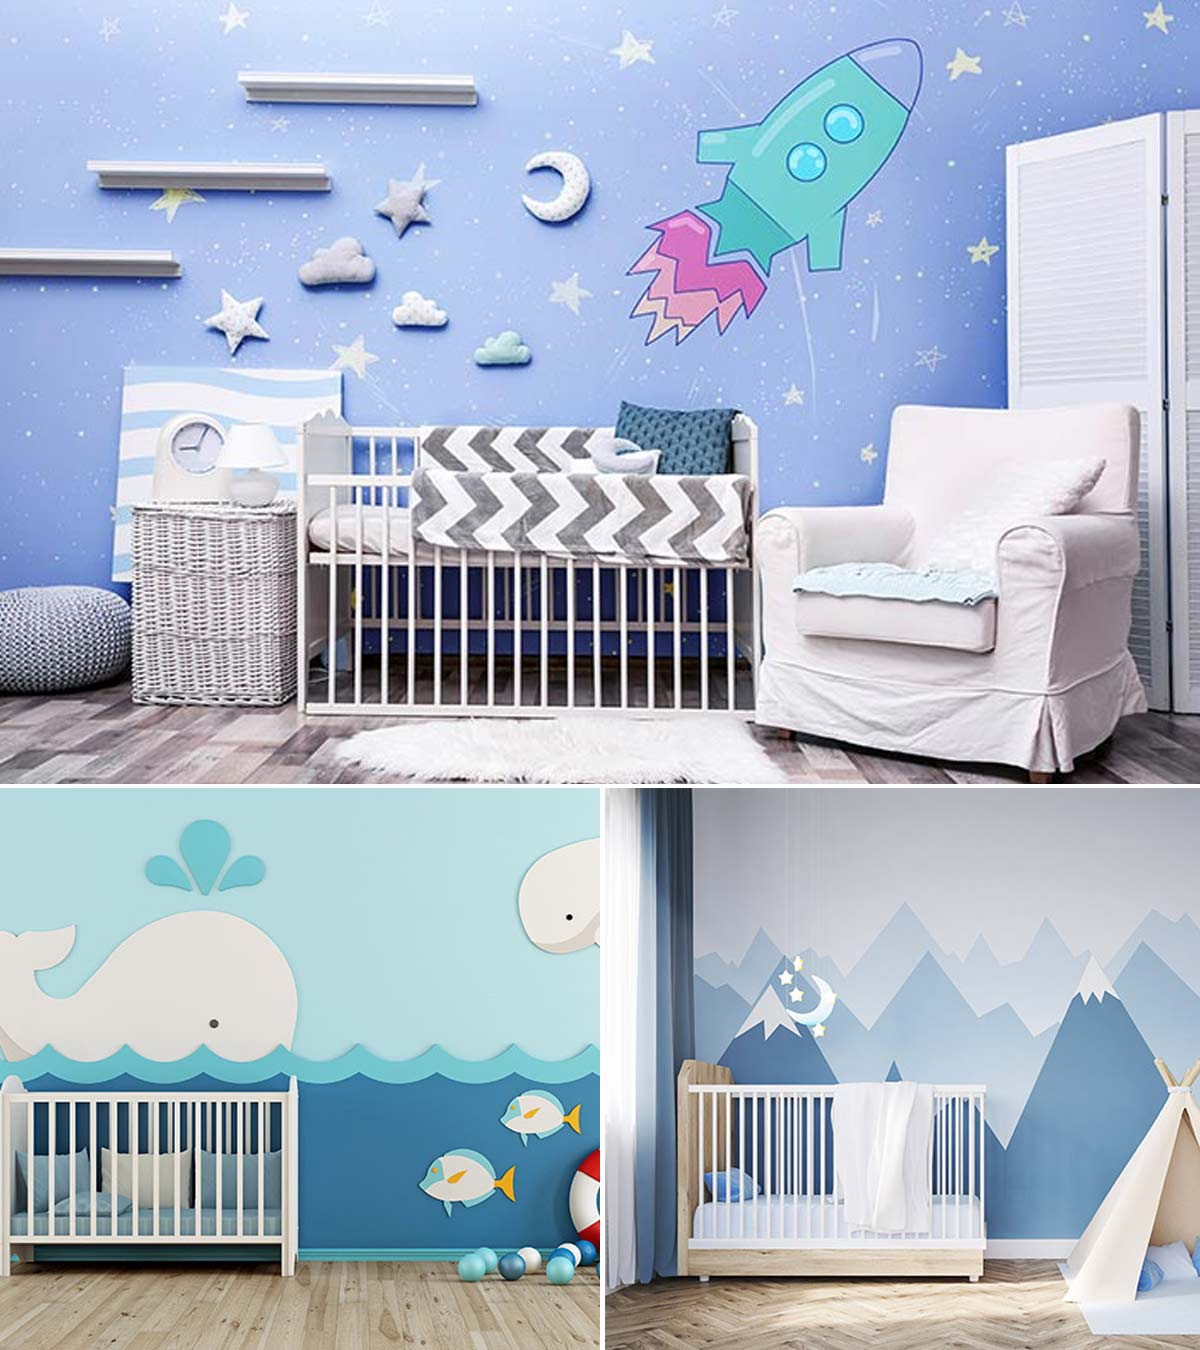 20 Out Of This World Day Nursery Sleep Room Ideas Oneshellsquare